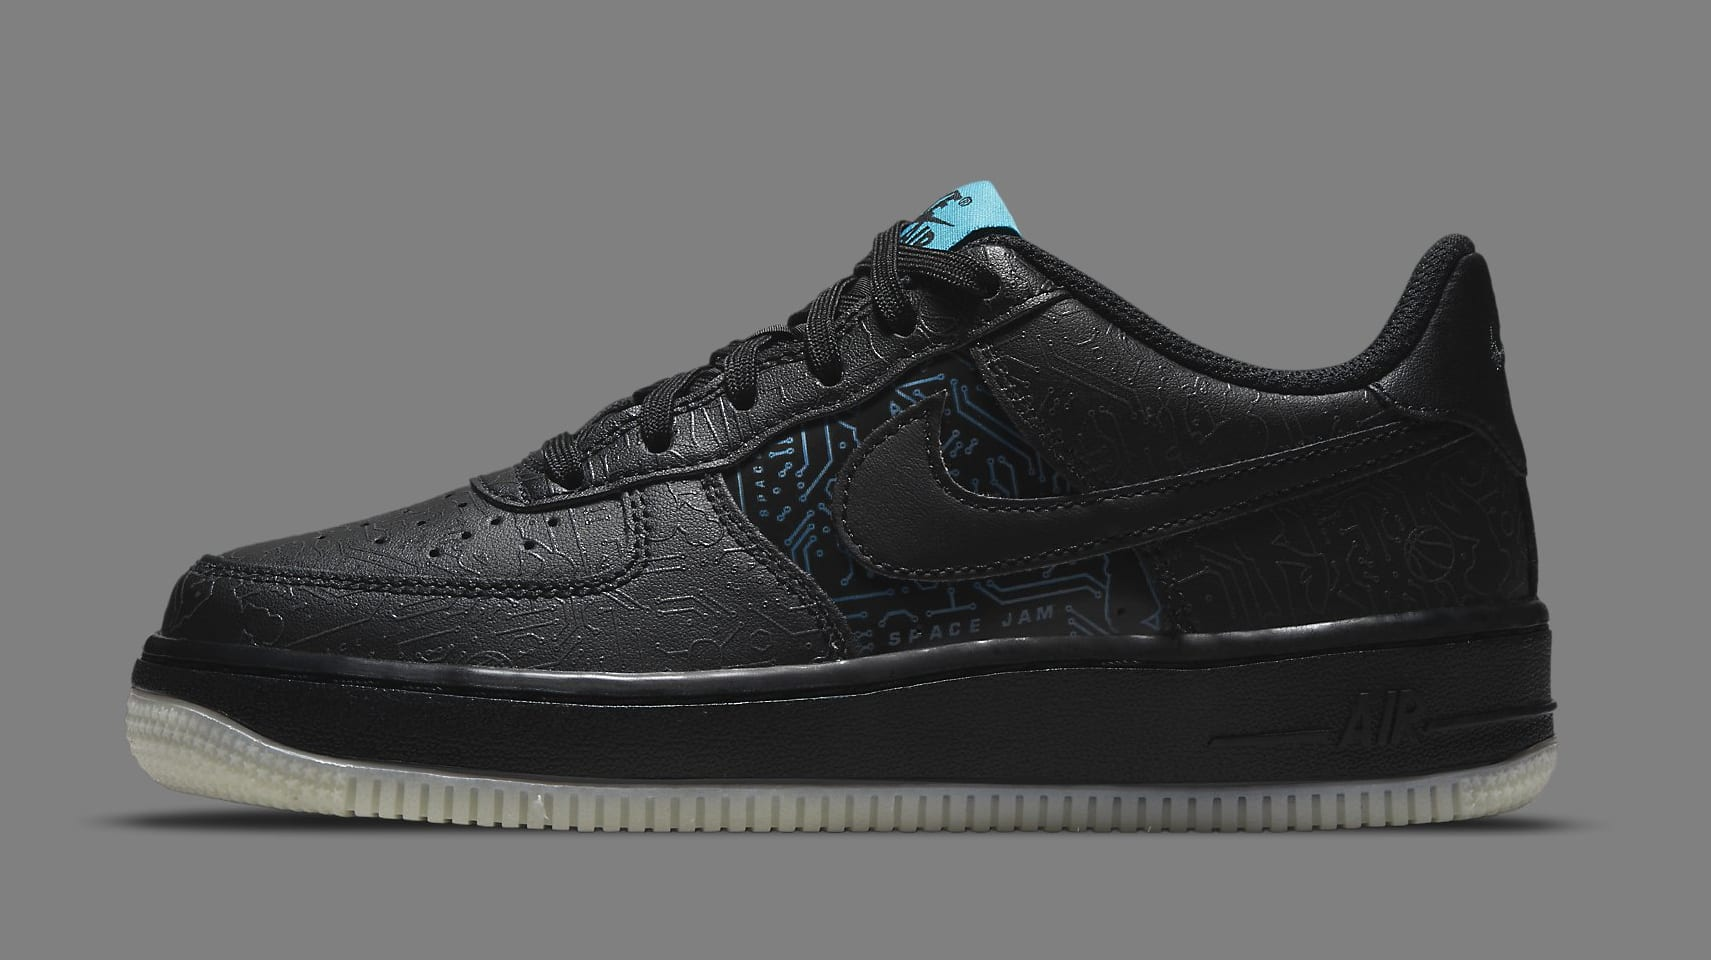 Nike Air Force 1 Low GS 'Space Jam' DN1434-001 Lateral